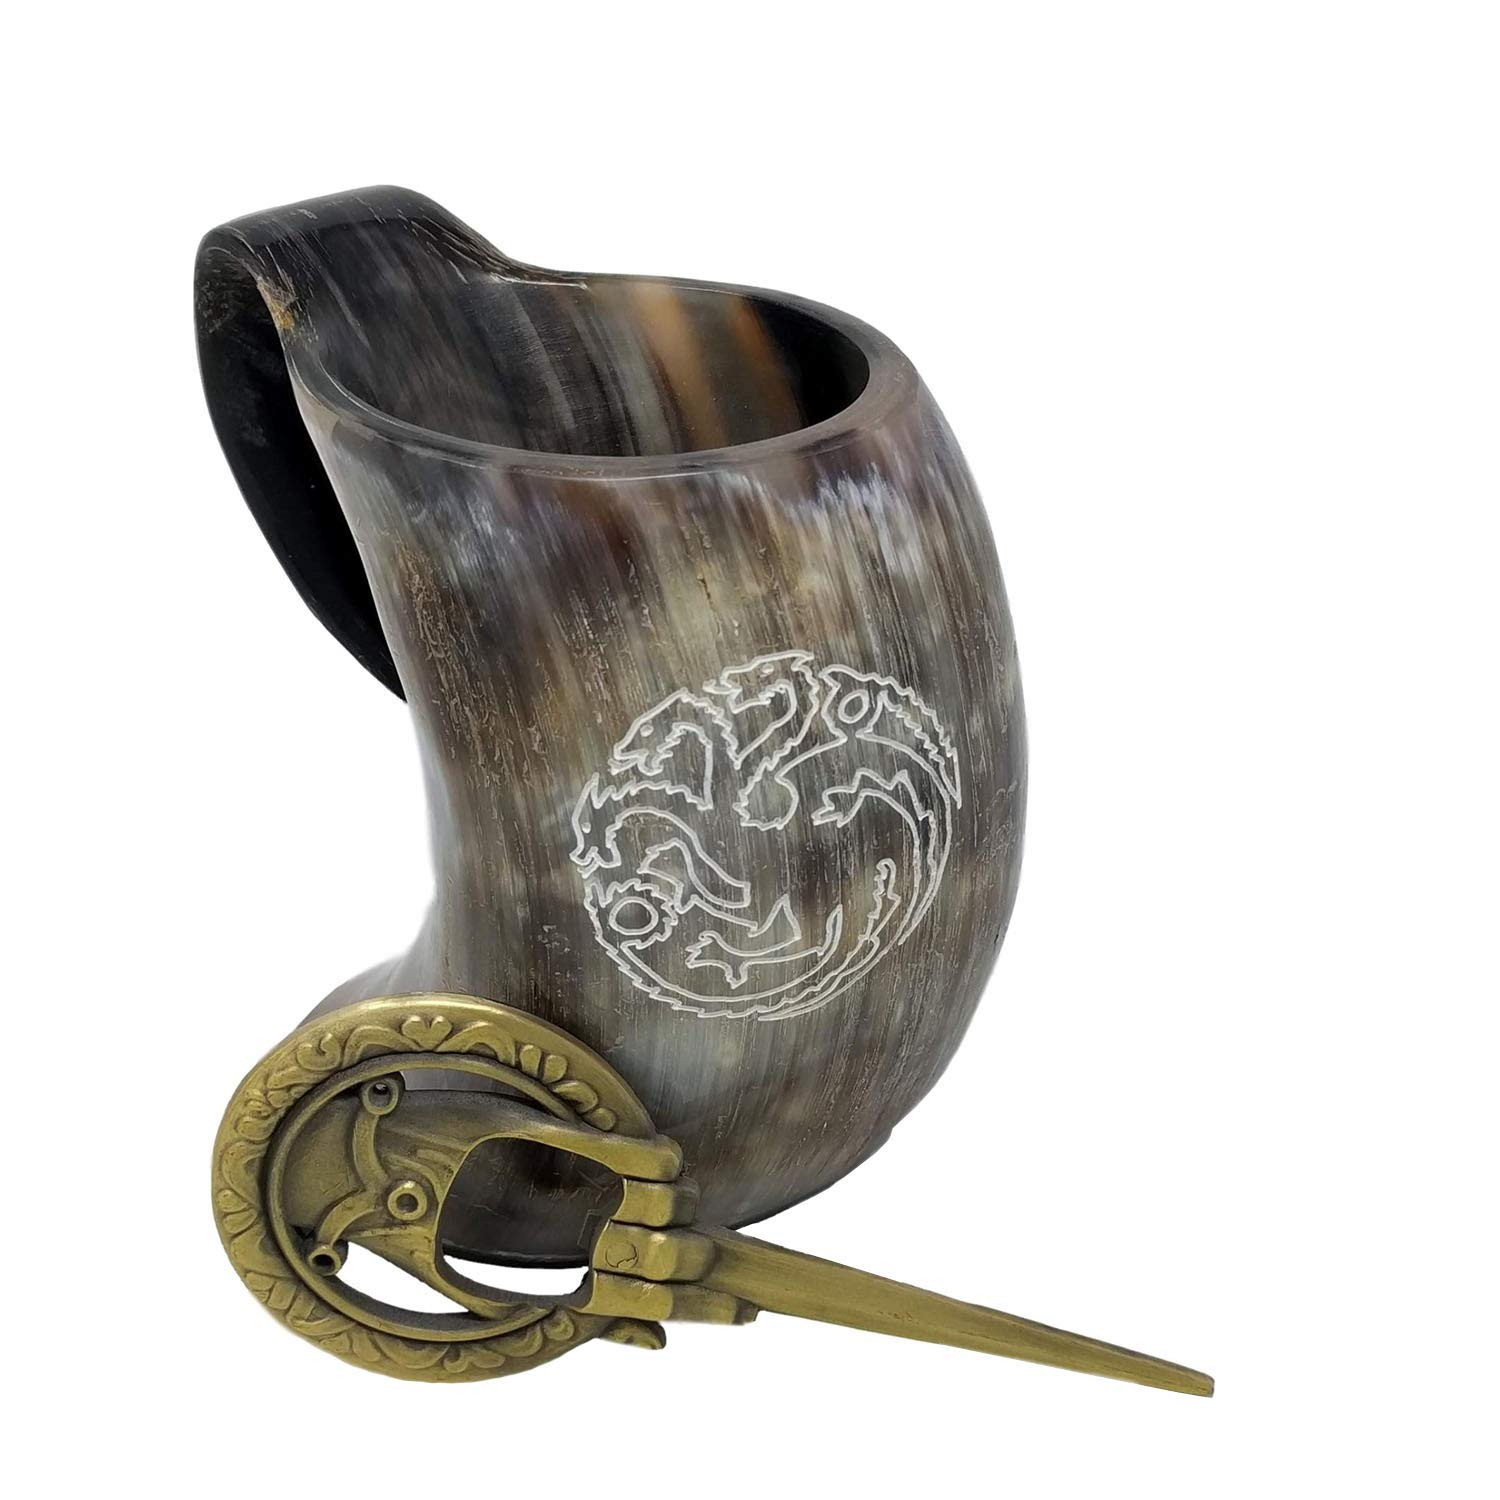 Alehorn Authentic Hand of the King Style Bottle Opener & The Original House Targaryen Sigil Viking Drinking Horn Tankard for Beer, Ale-Medieval Inspired Mug - Perfect Gift for Game of Thrones Fans